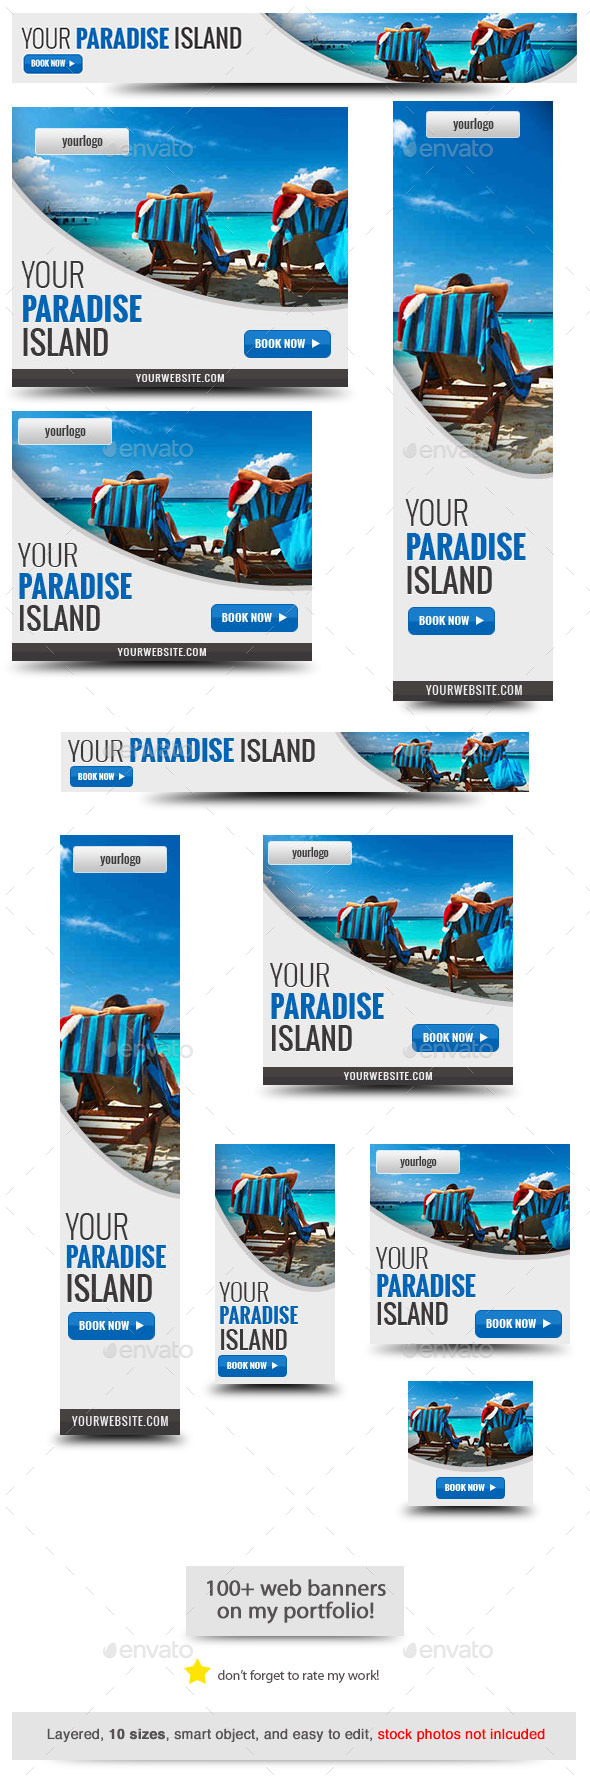 Your Paradise Web Banner Template